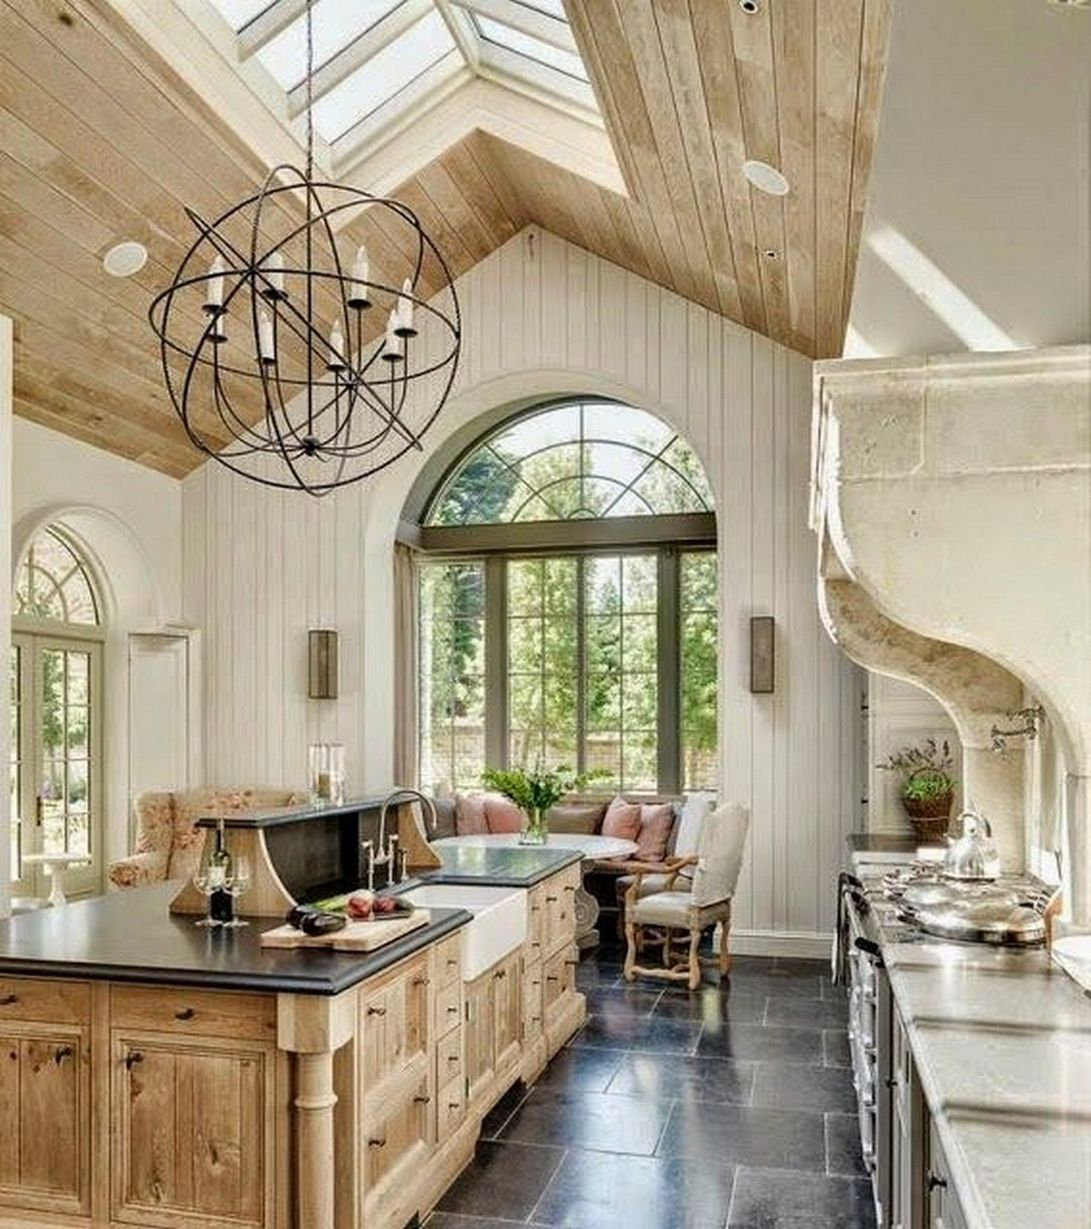 50 Best French Country Kitchens Design Ideas & Remodel Pict  http://decorspace.